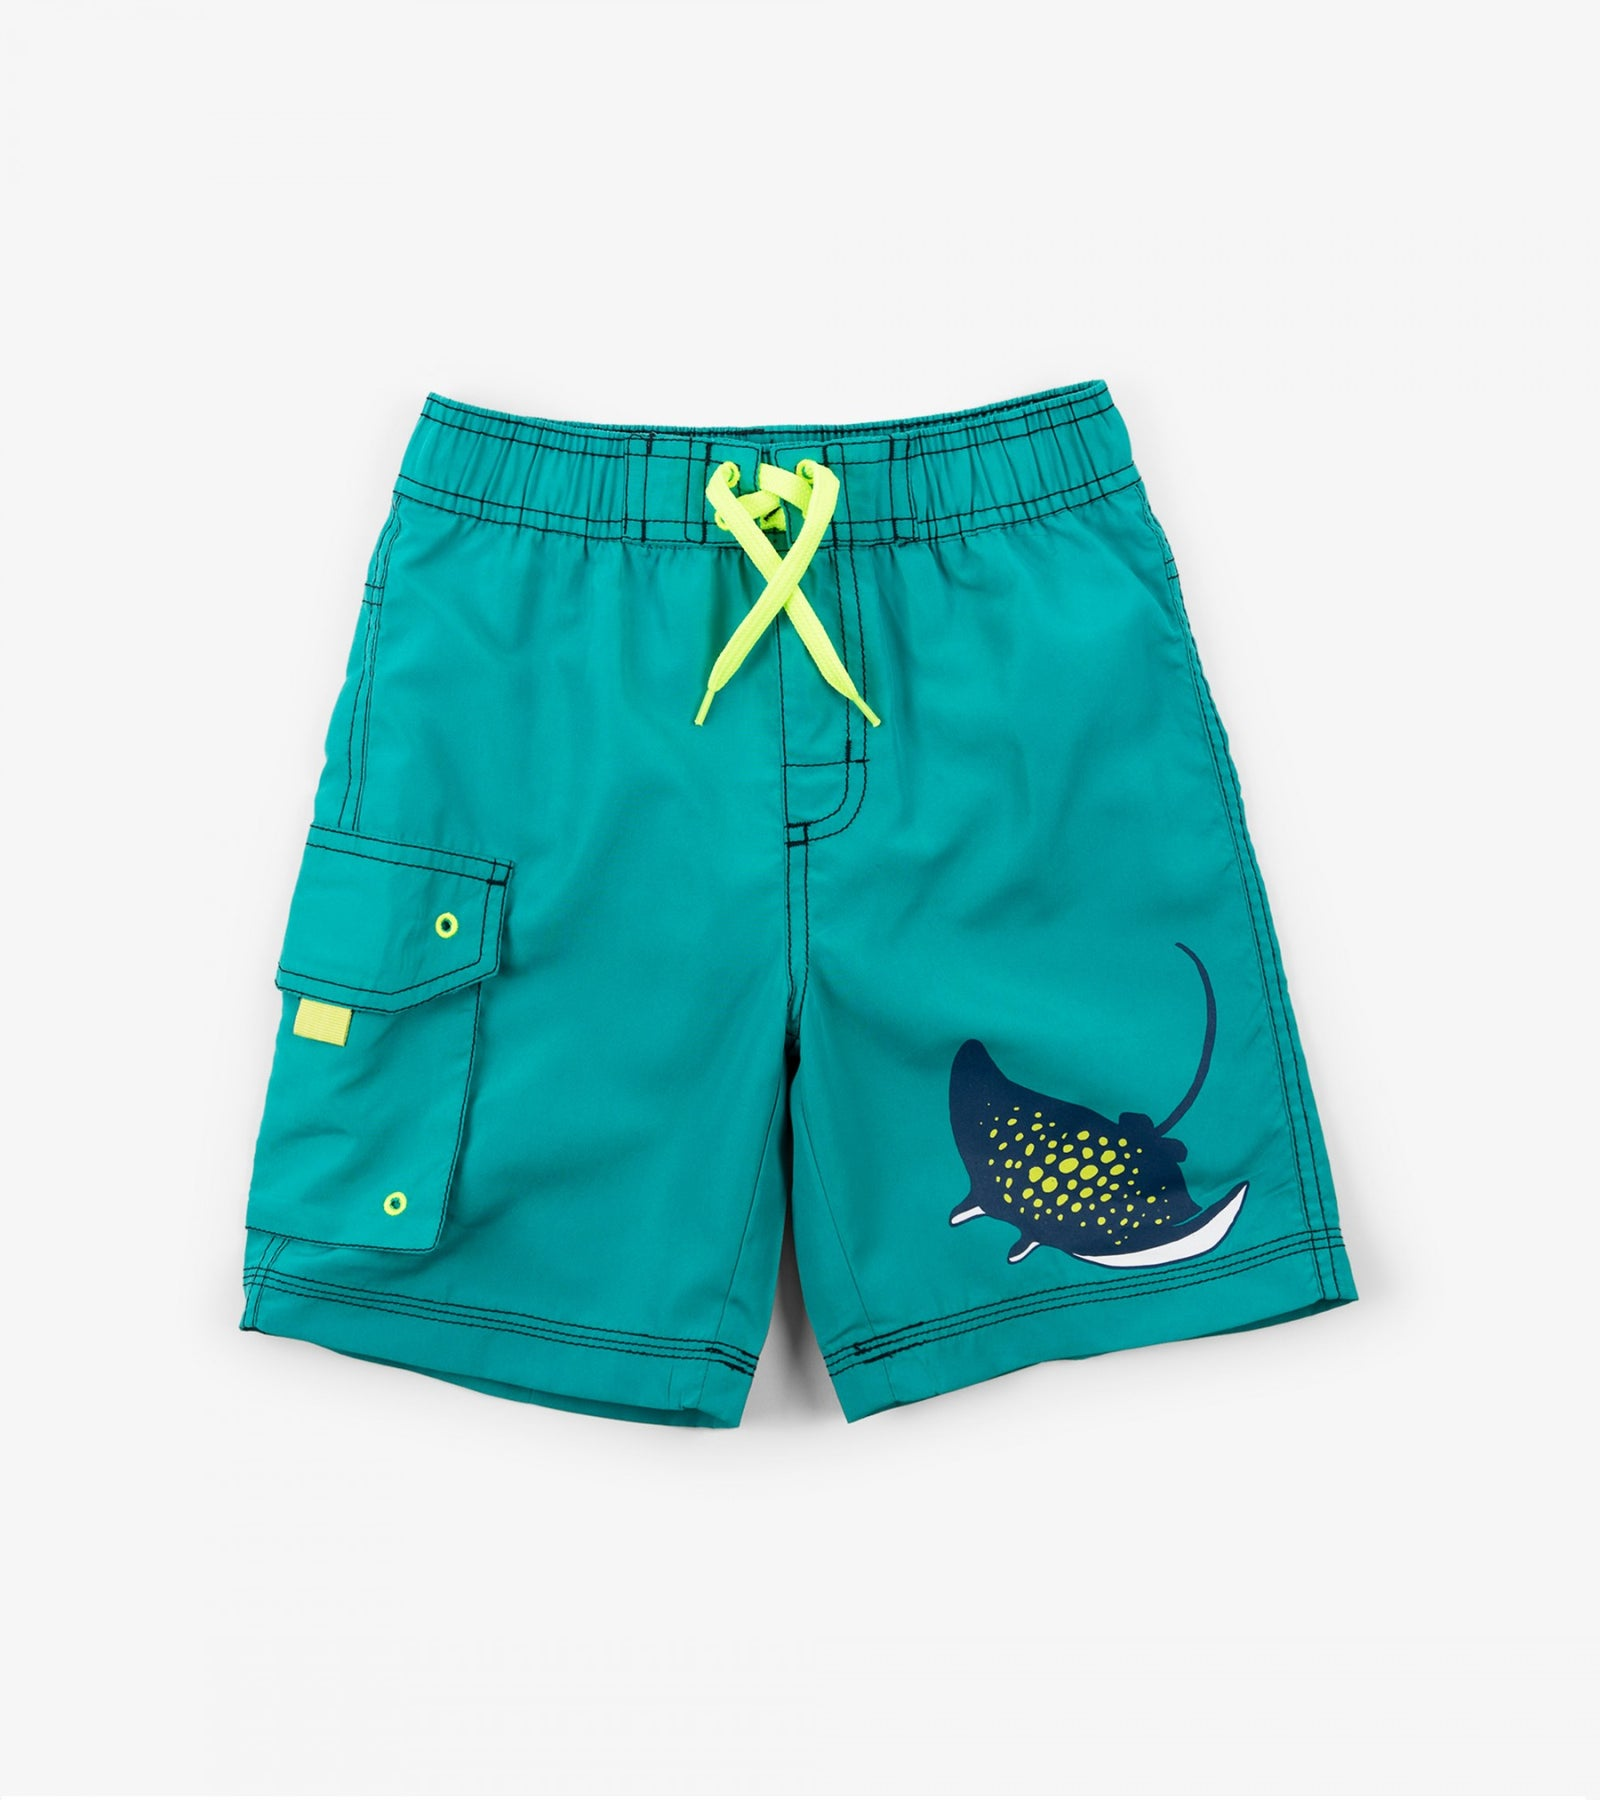 Friendly Manta Rays Board Shorts